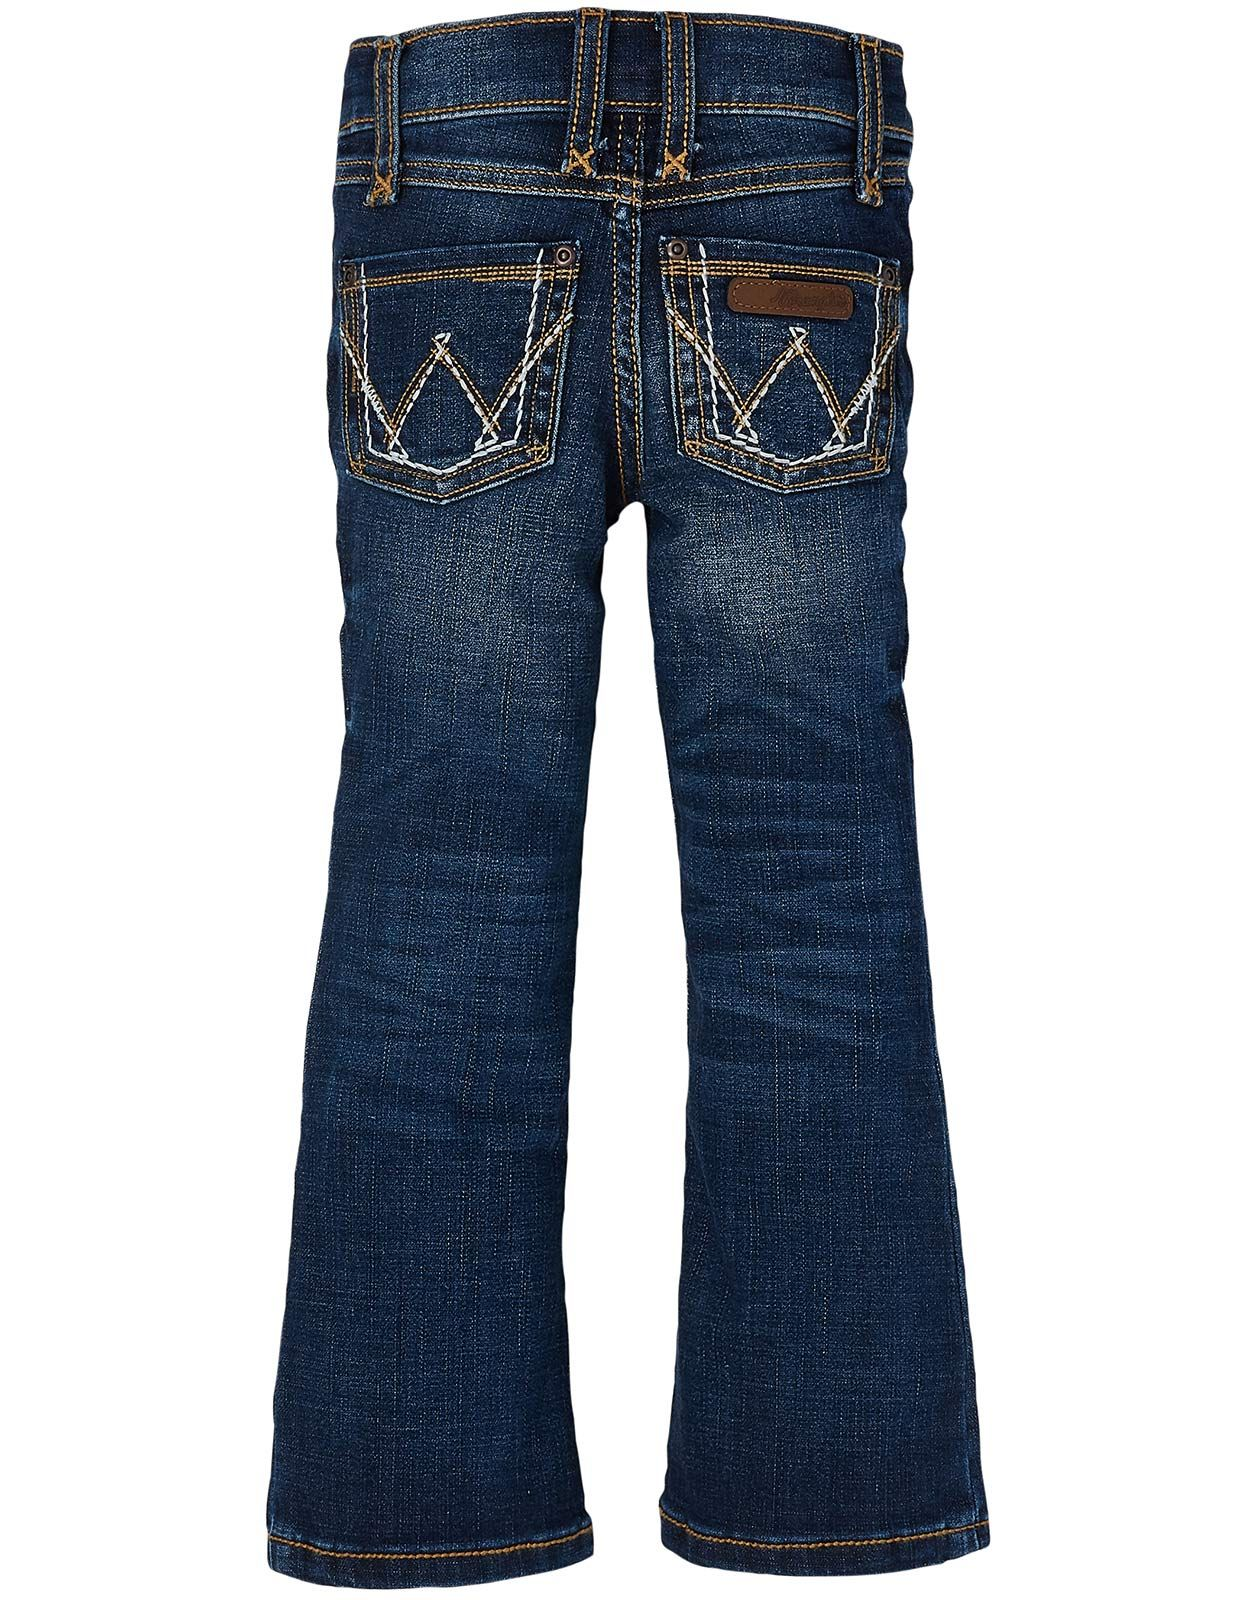 Wrangler Girl's Stretch Low Rise Regular Fit Boot Cut Jeans (Sizes 4-14) - MS Wash